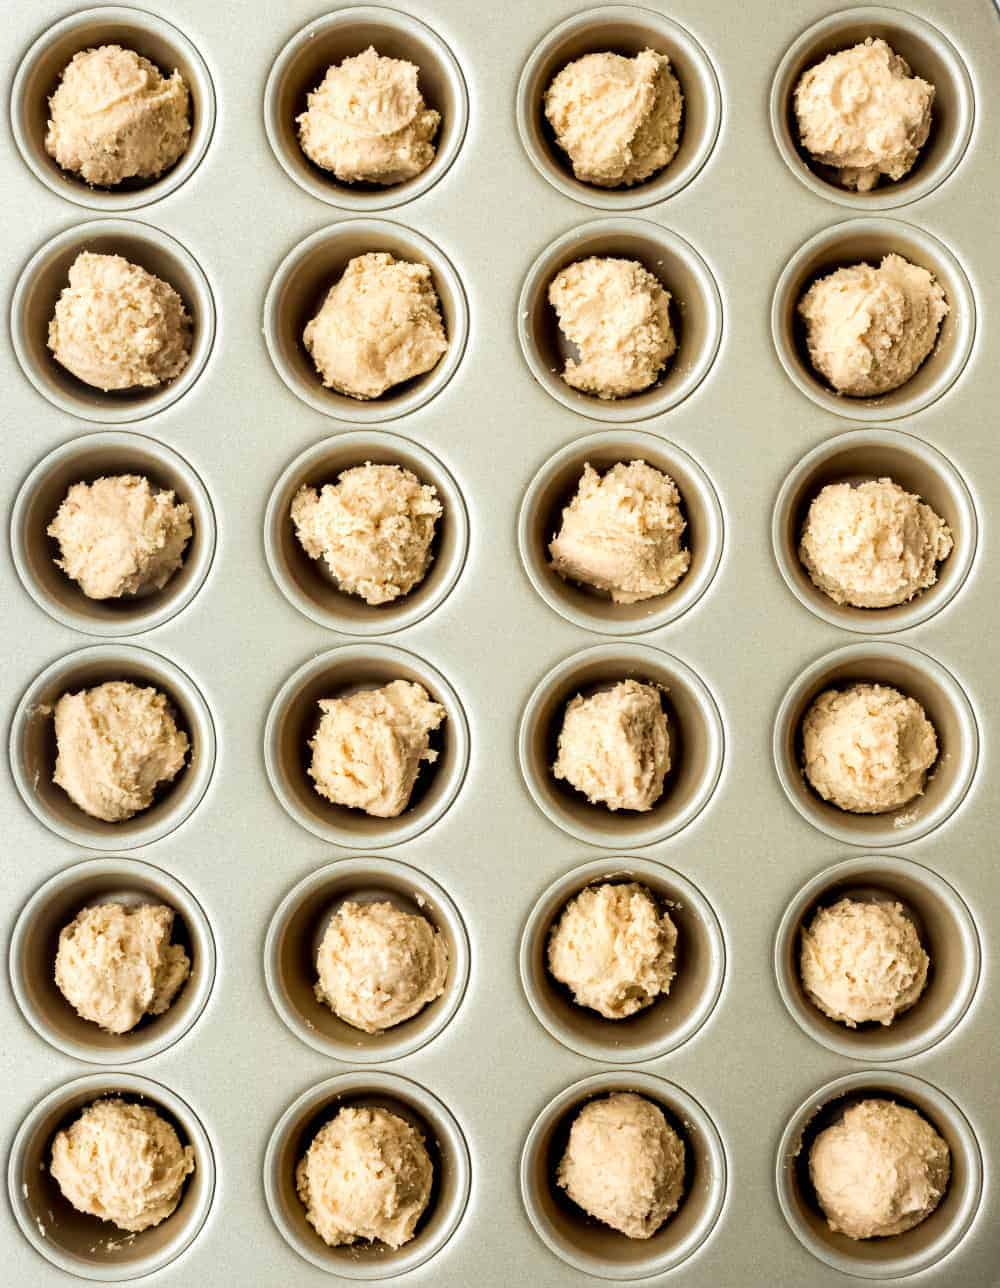 Peanut butter cookie dough scooped into a mini muffin tin to make Peanut Butter Cup Cookies